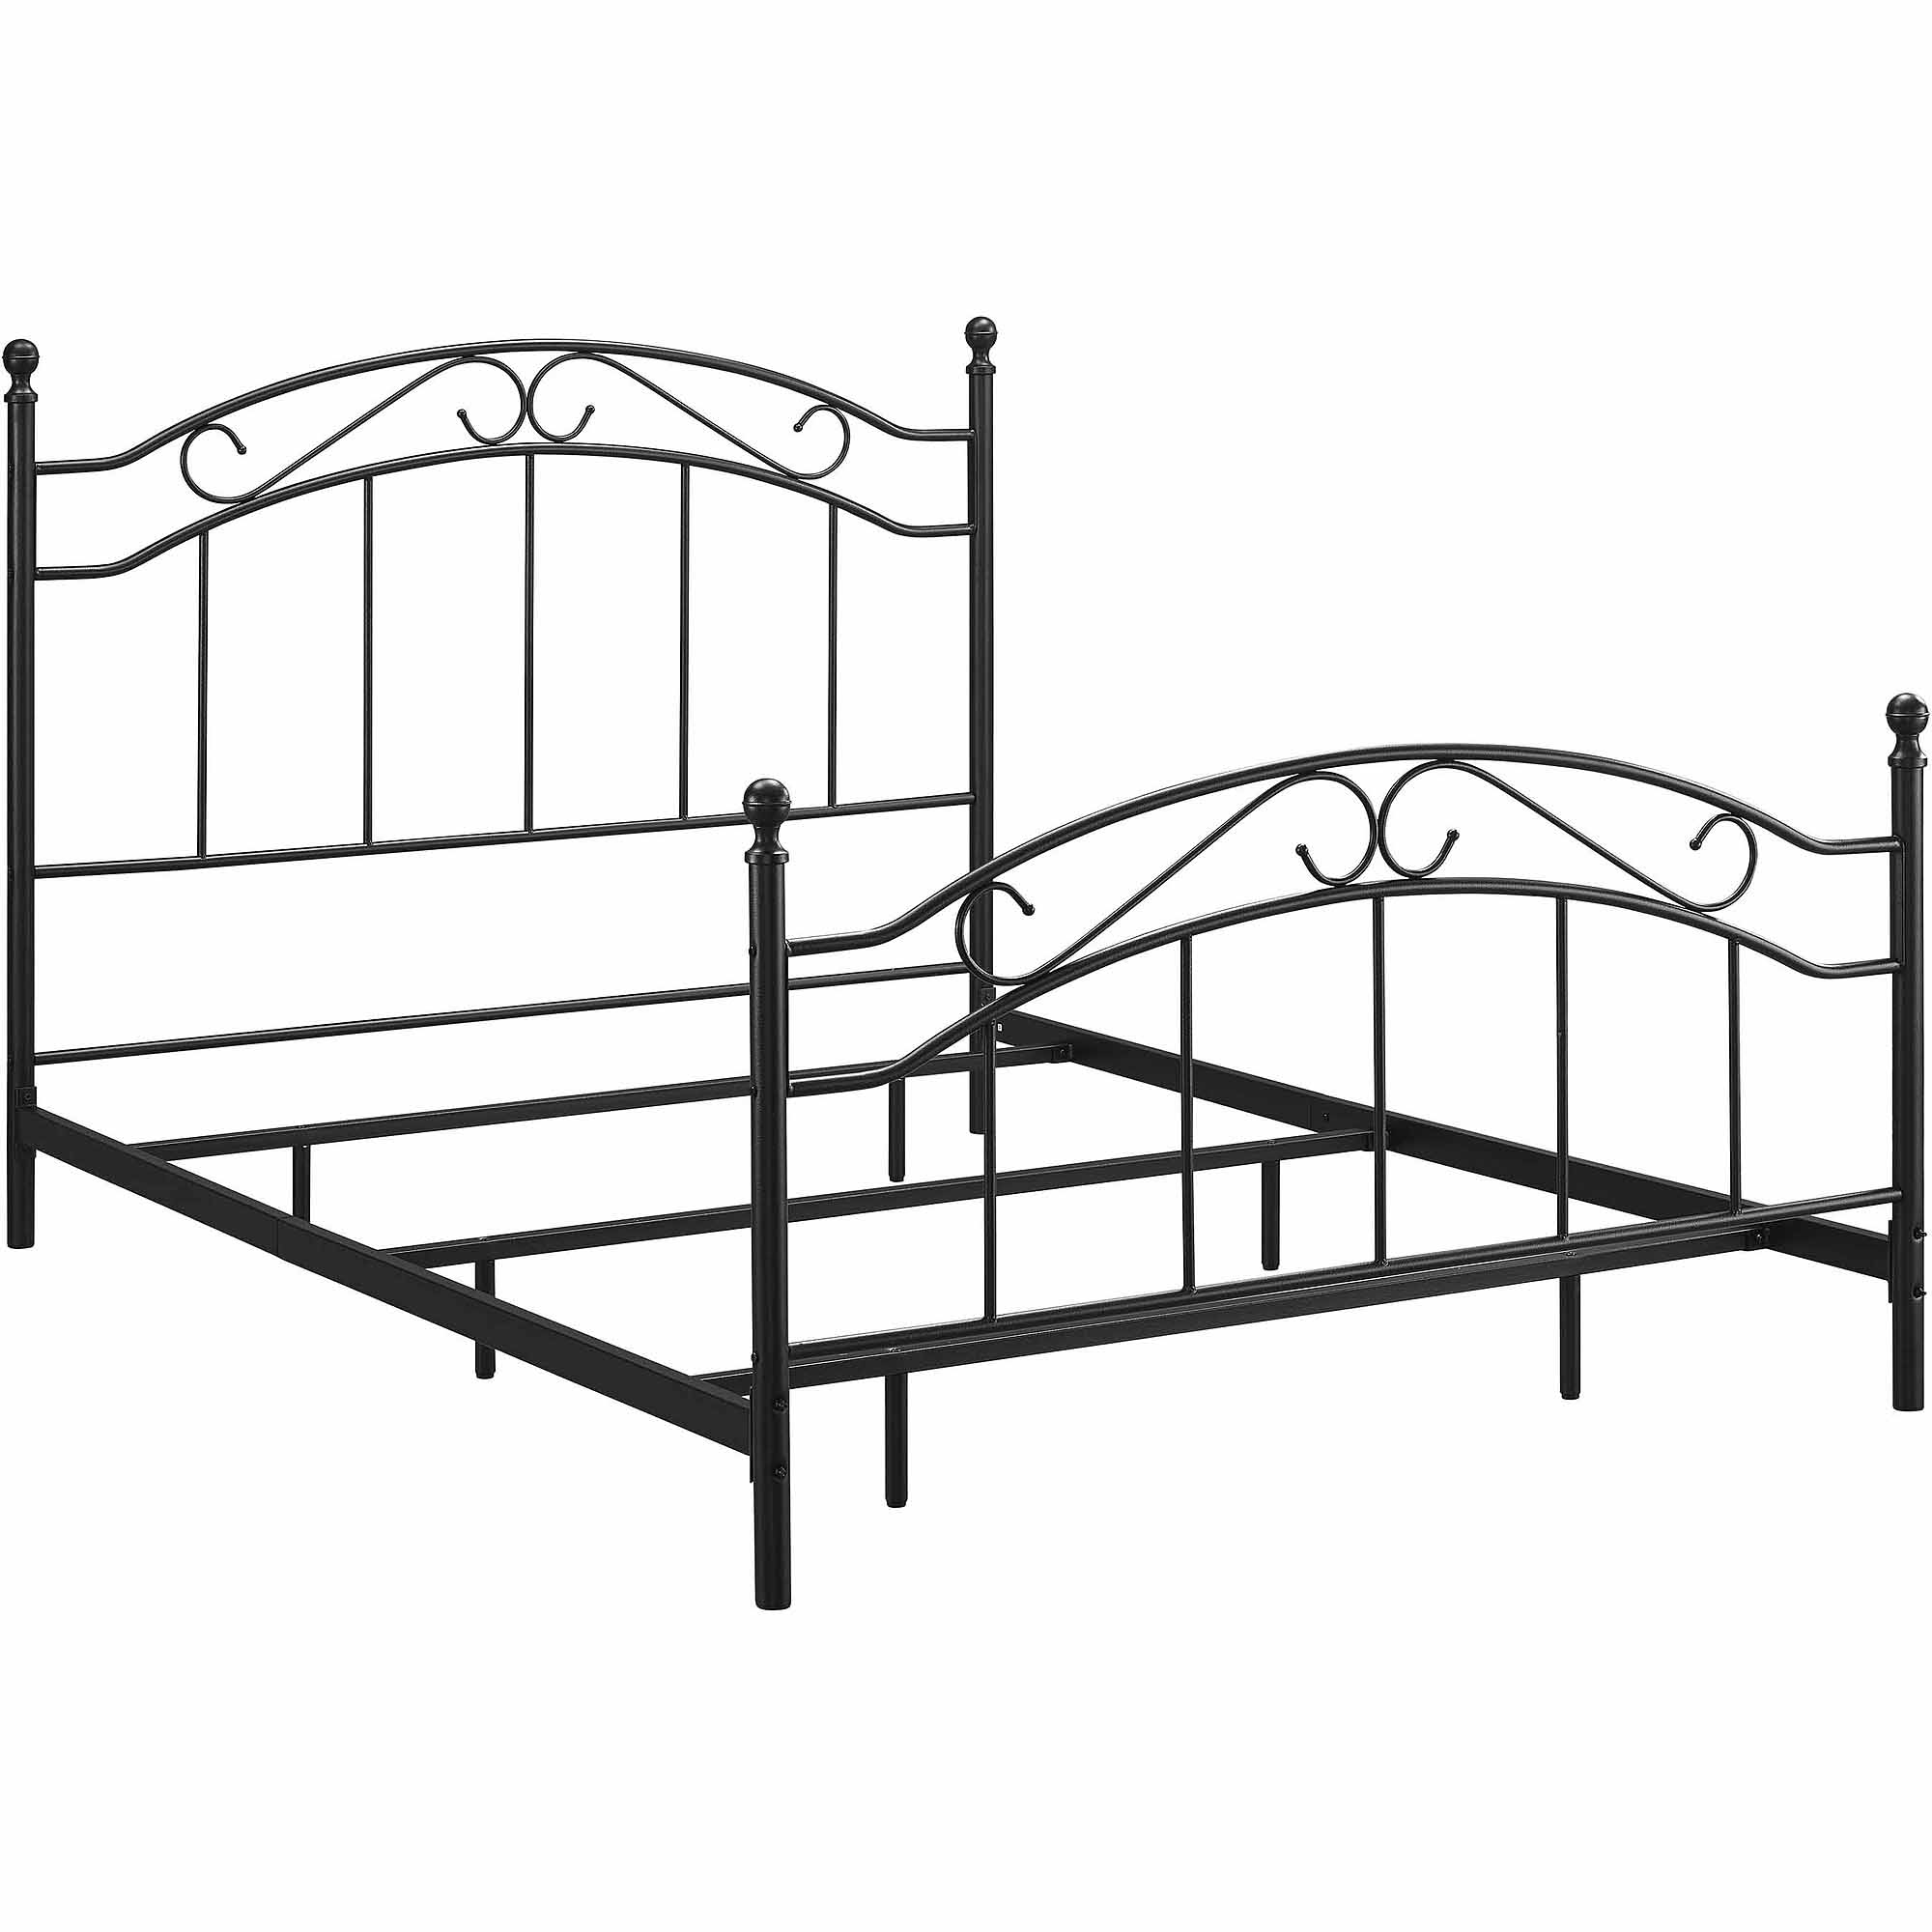 Mainstays Queen Metal Bed, Black - Walmart.com